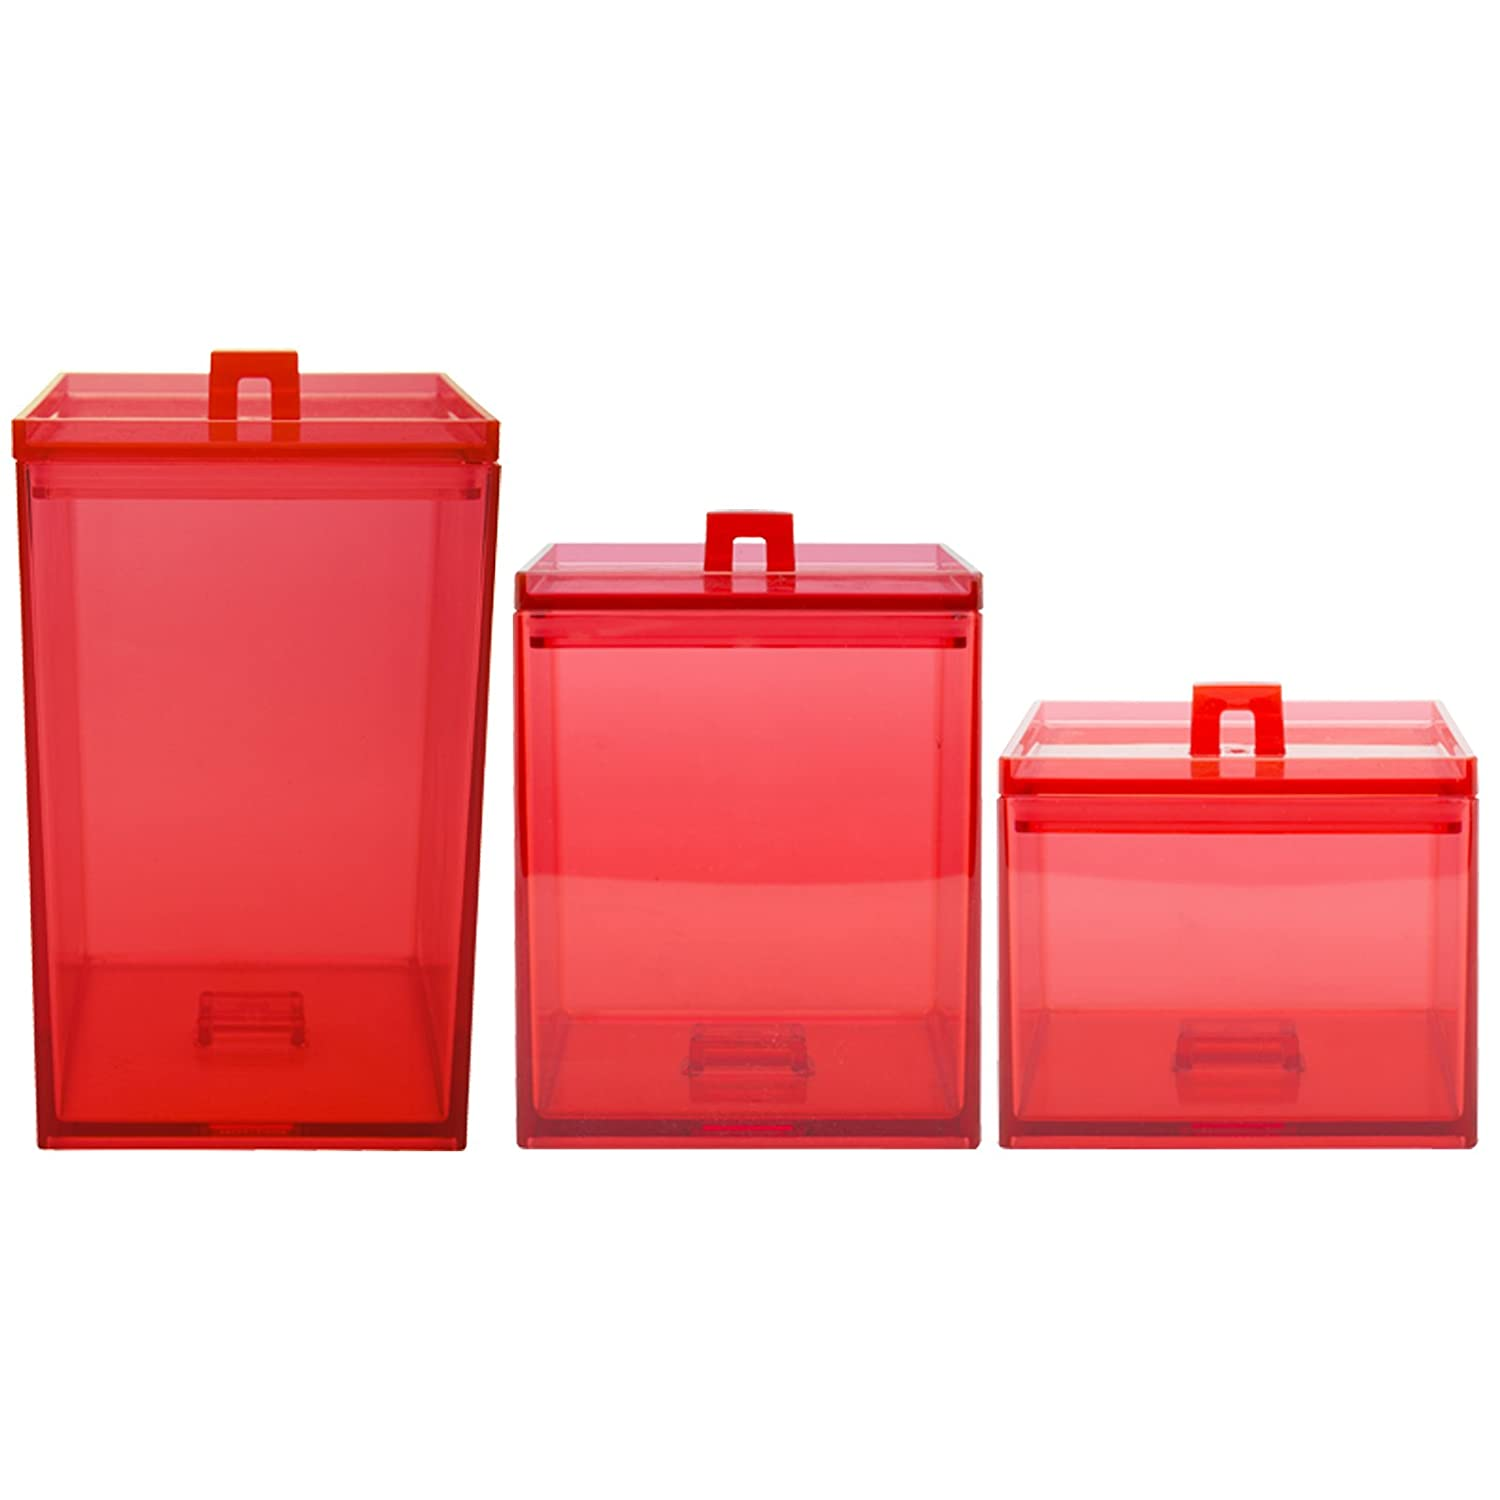 Red Canister Sets With Image Str8talk Storify